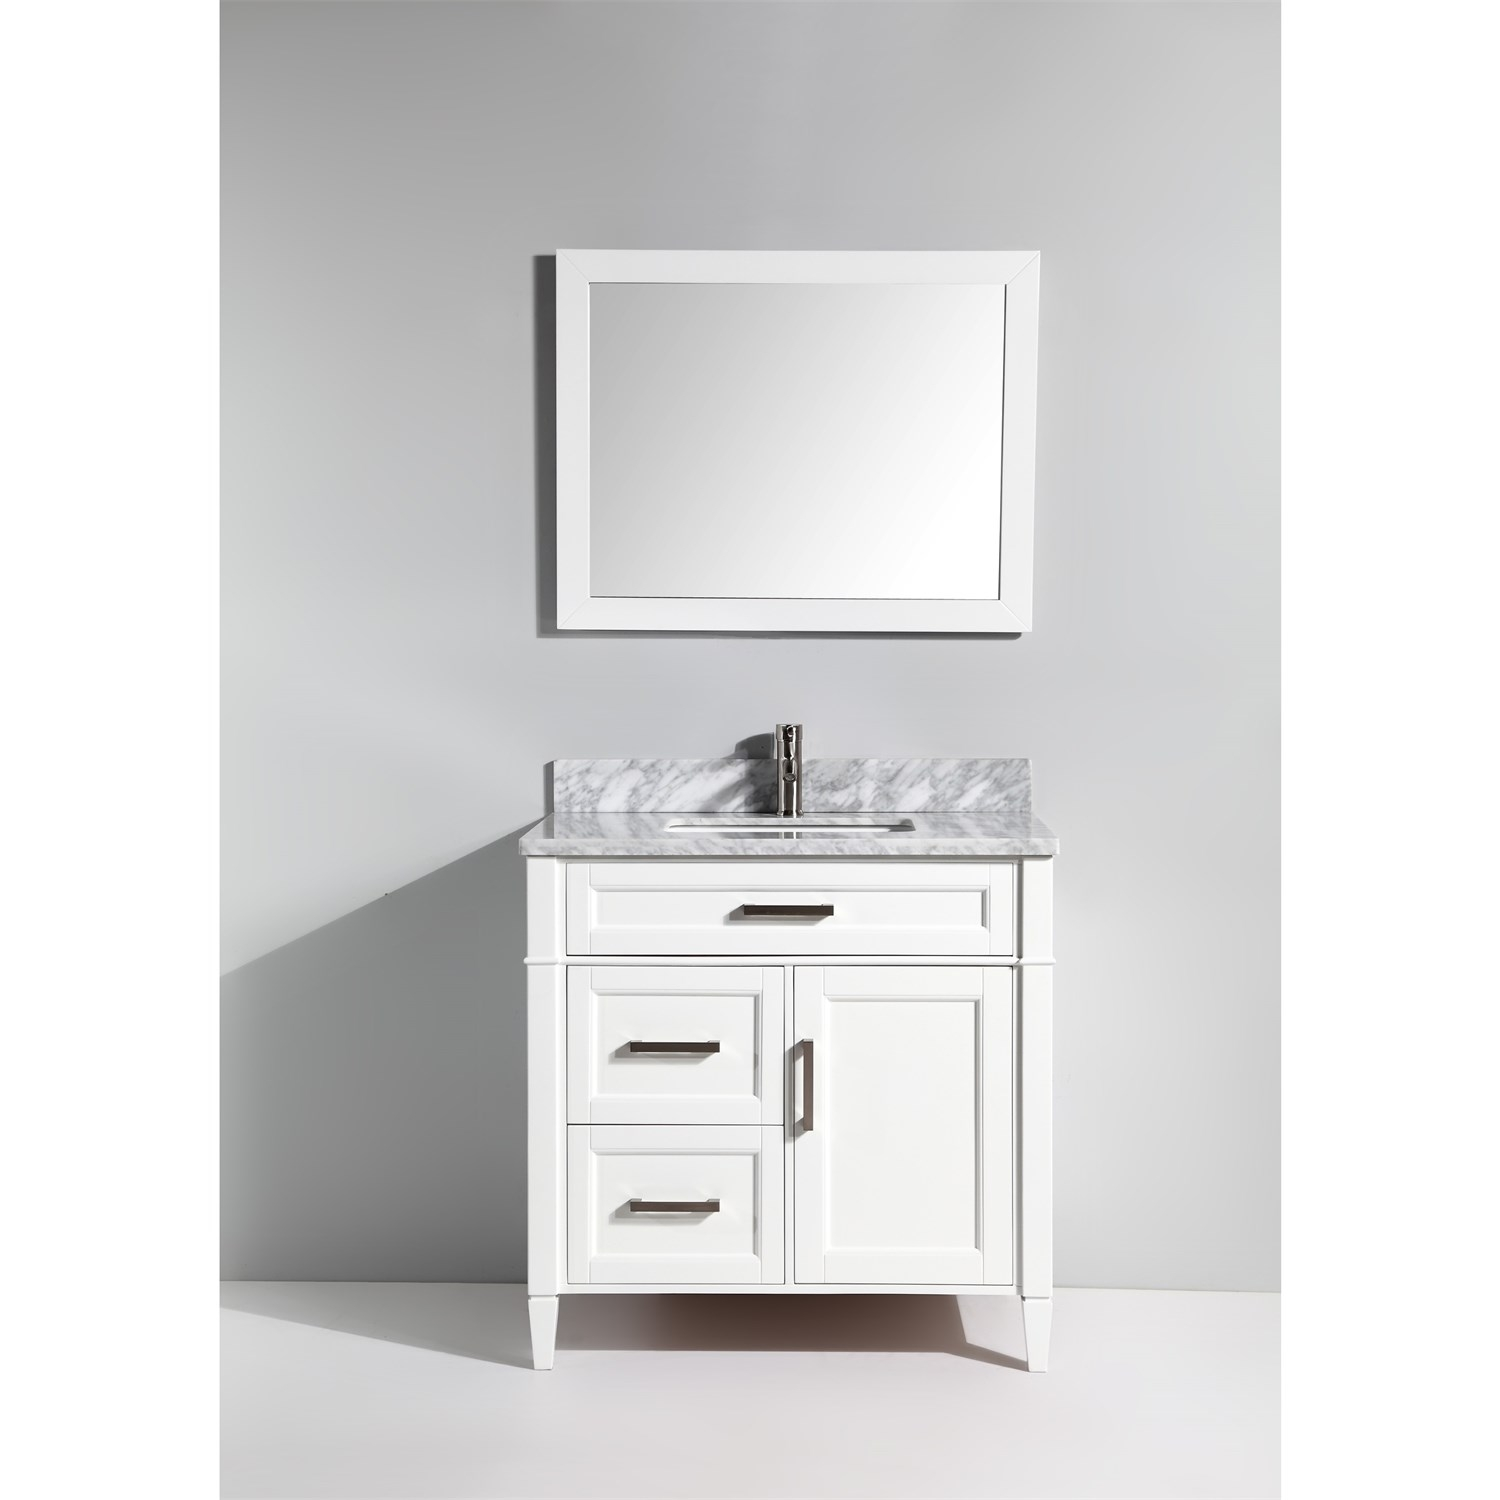 18 Inch Bathroom Sink And Vanity Combo